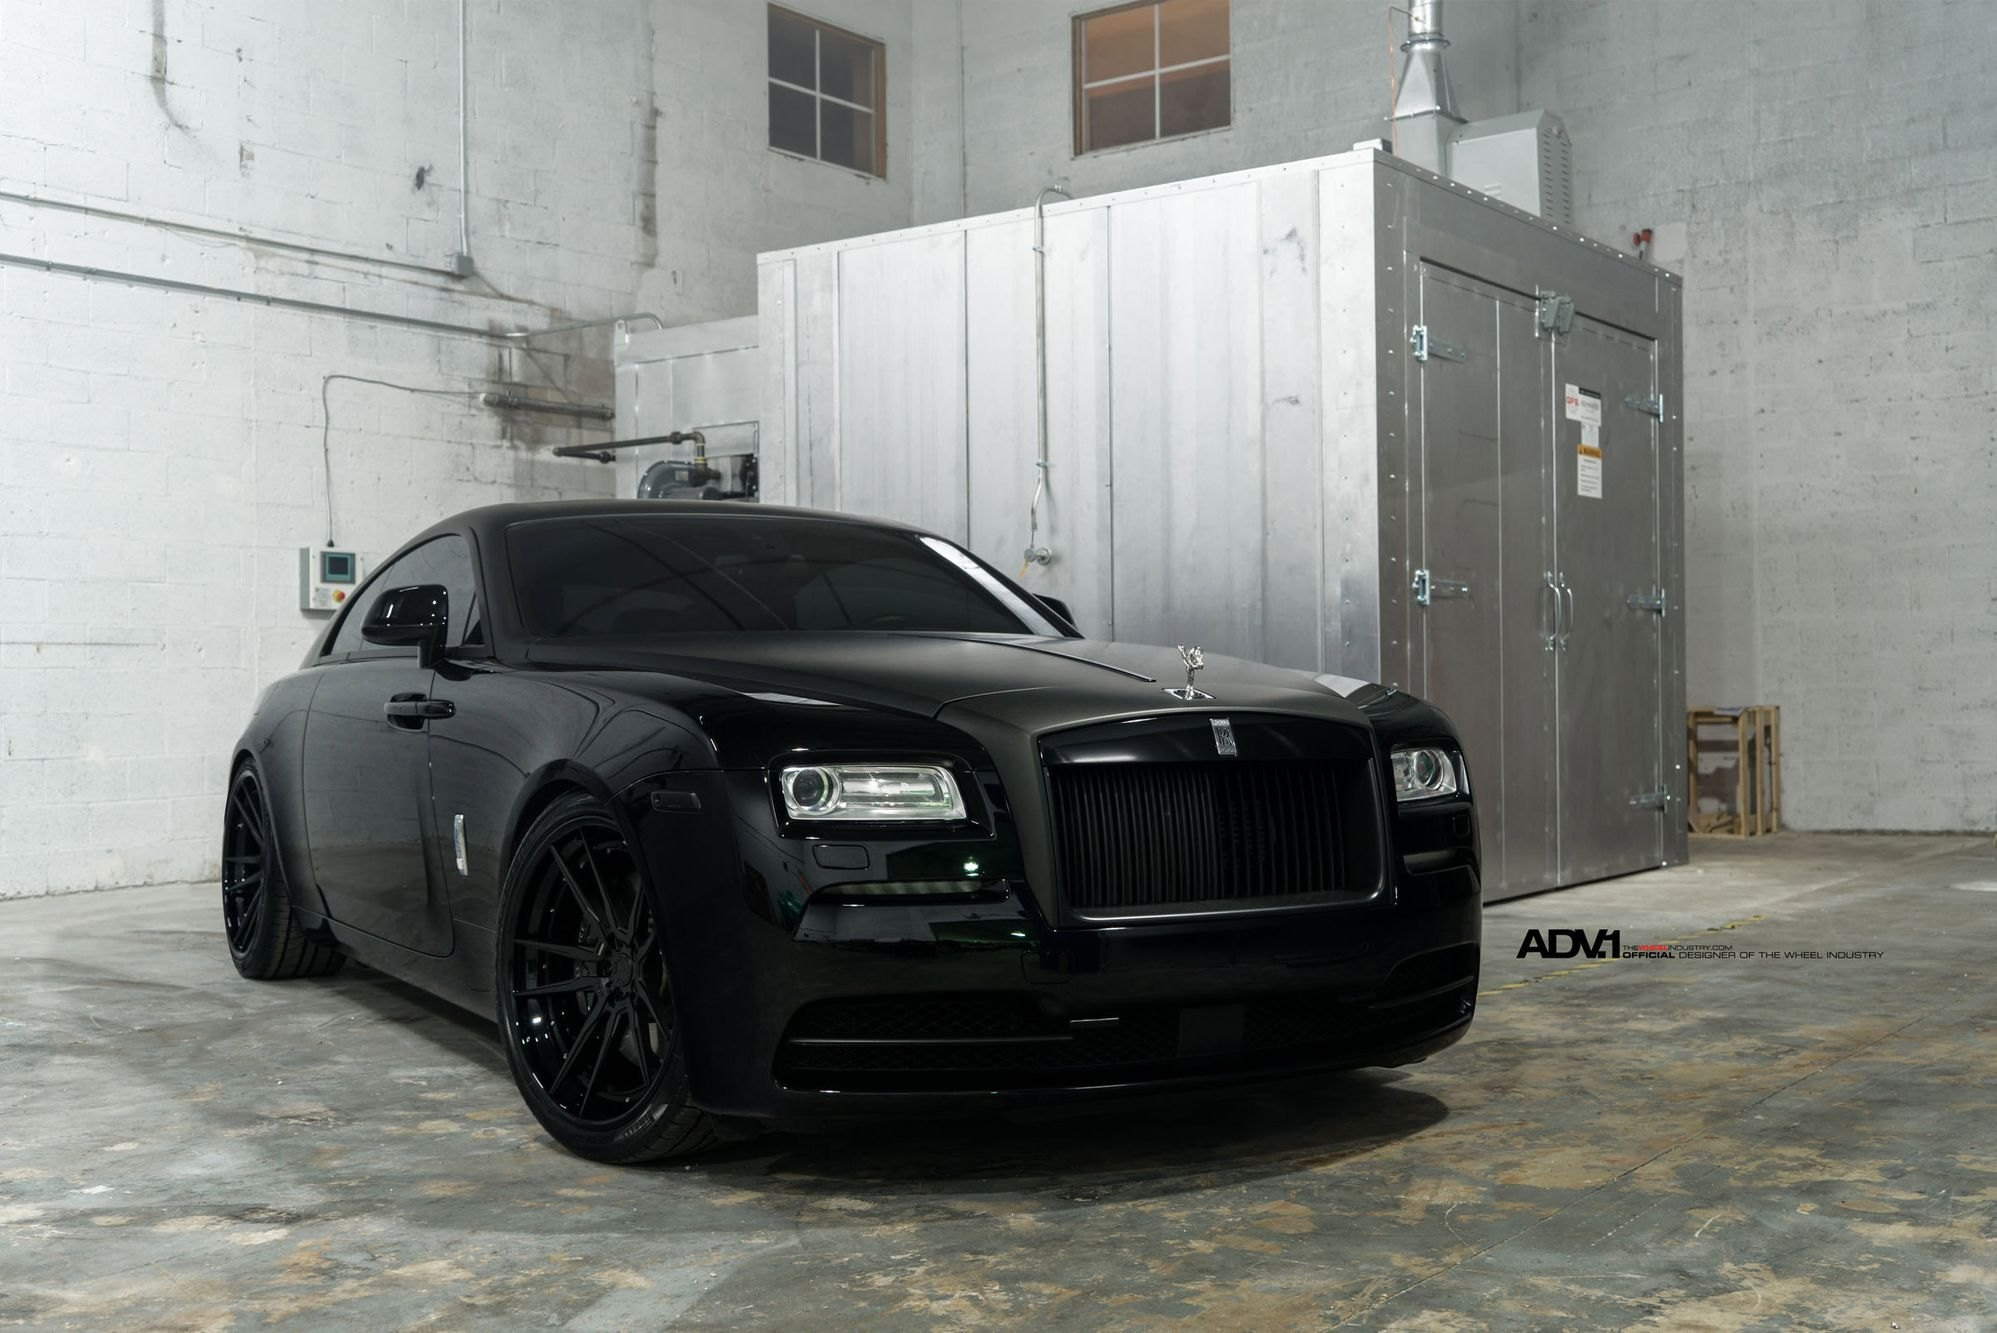 Verbazingwekkend Sinister Custom Blacked Out Rolls Royce Ghost on Matte Black ADV1 PP-19